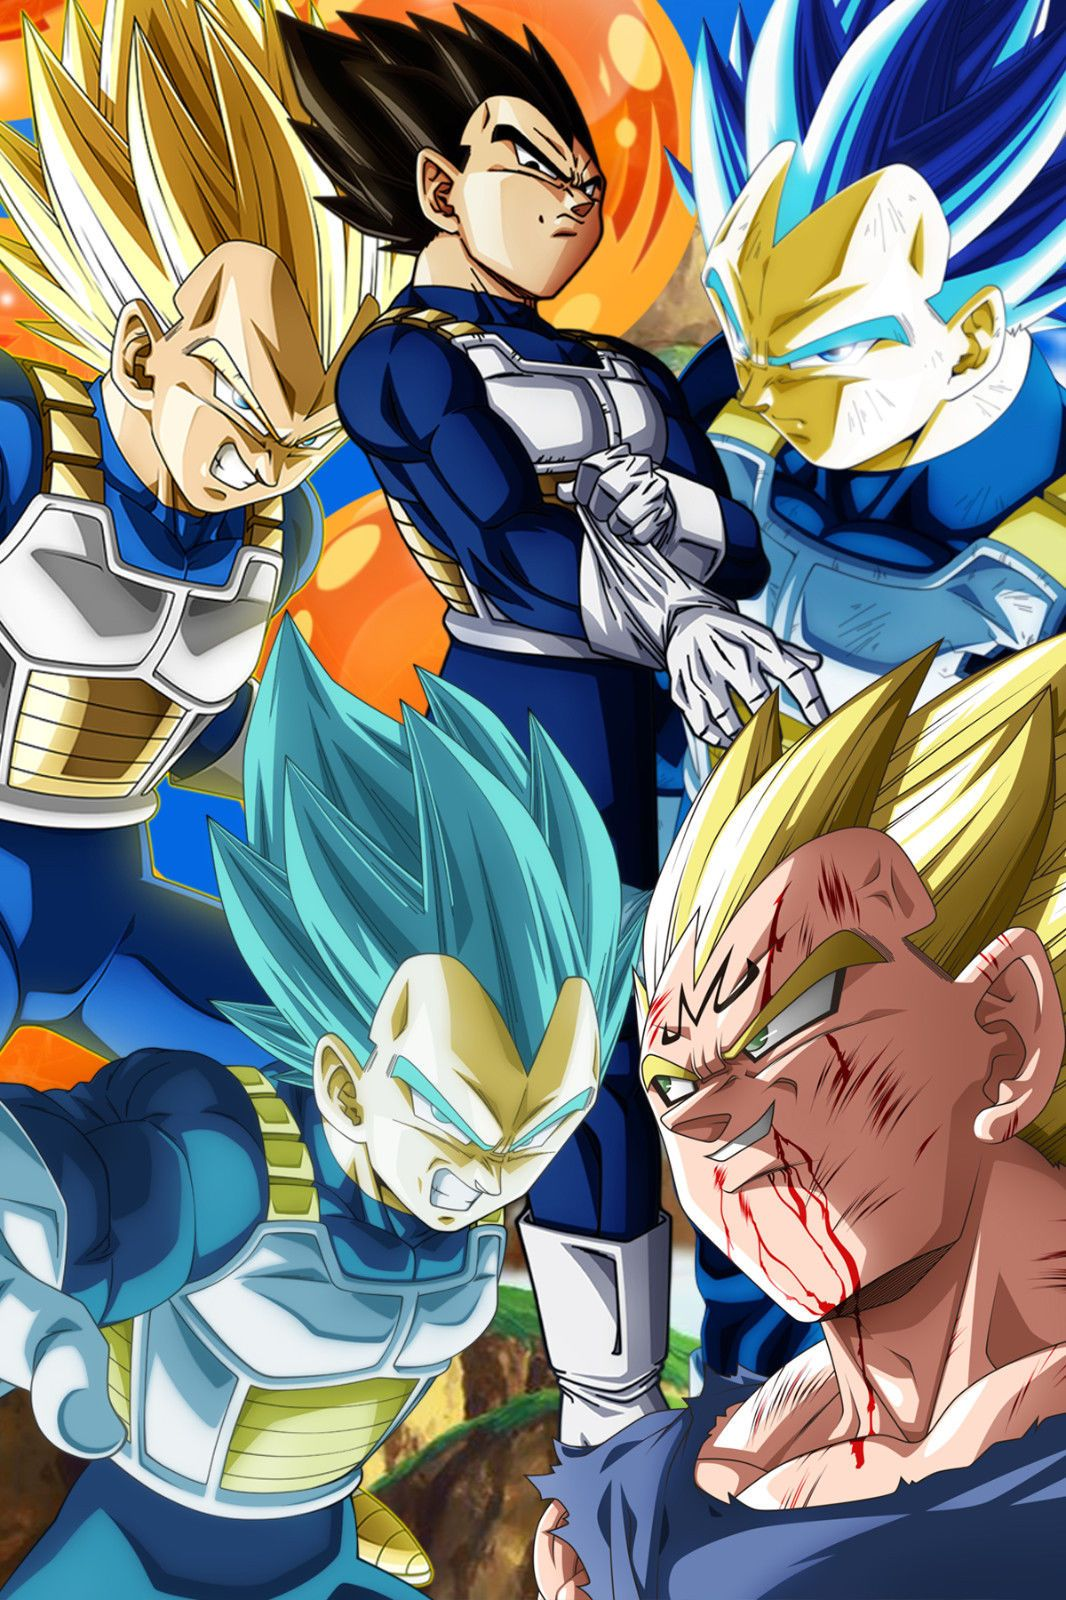 Dragon Ball Z Super Poster Vegeta Five Different Forms 12inx18in Free Shipping Anime Dragon Ball Super Anime Dragon Ball Goku Dragon Ball Super Manga